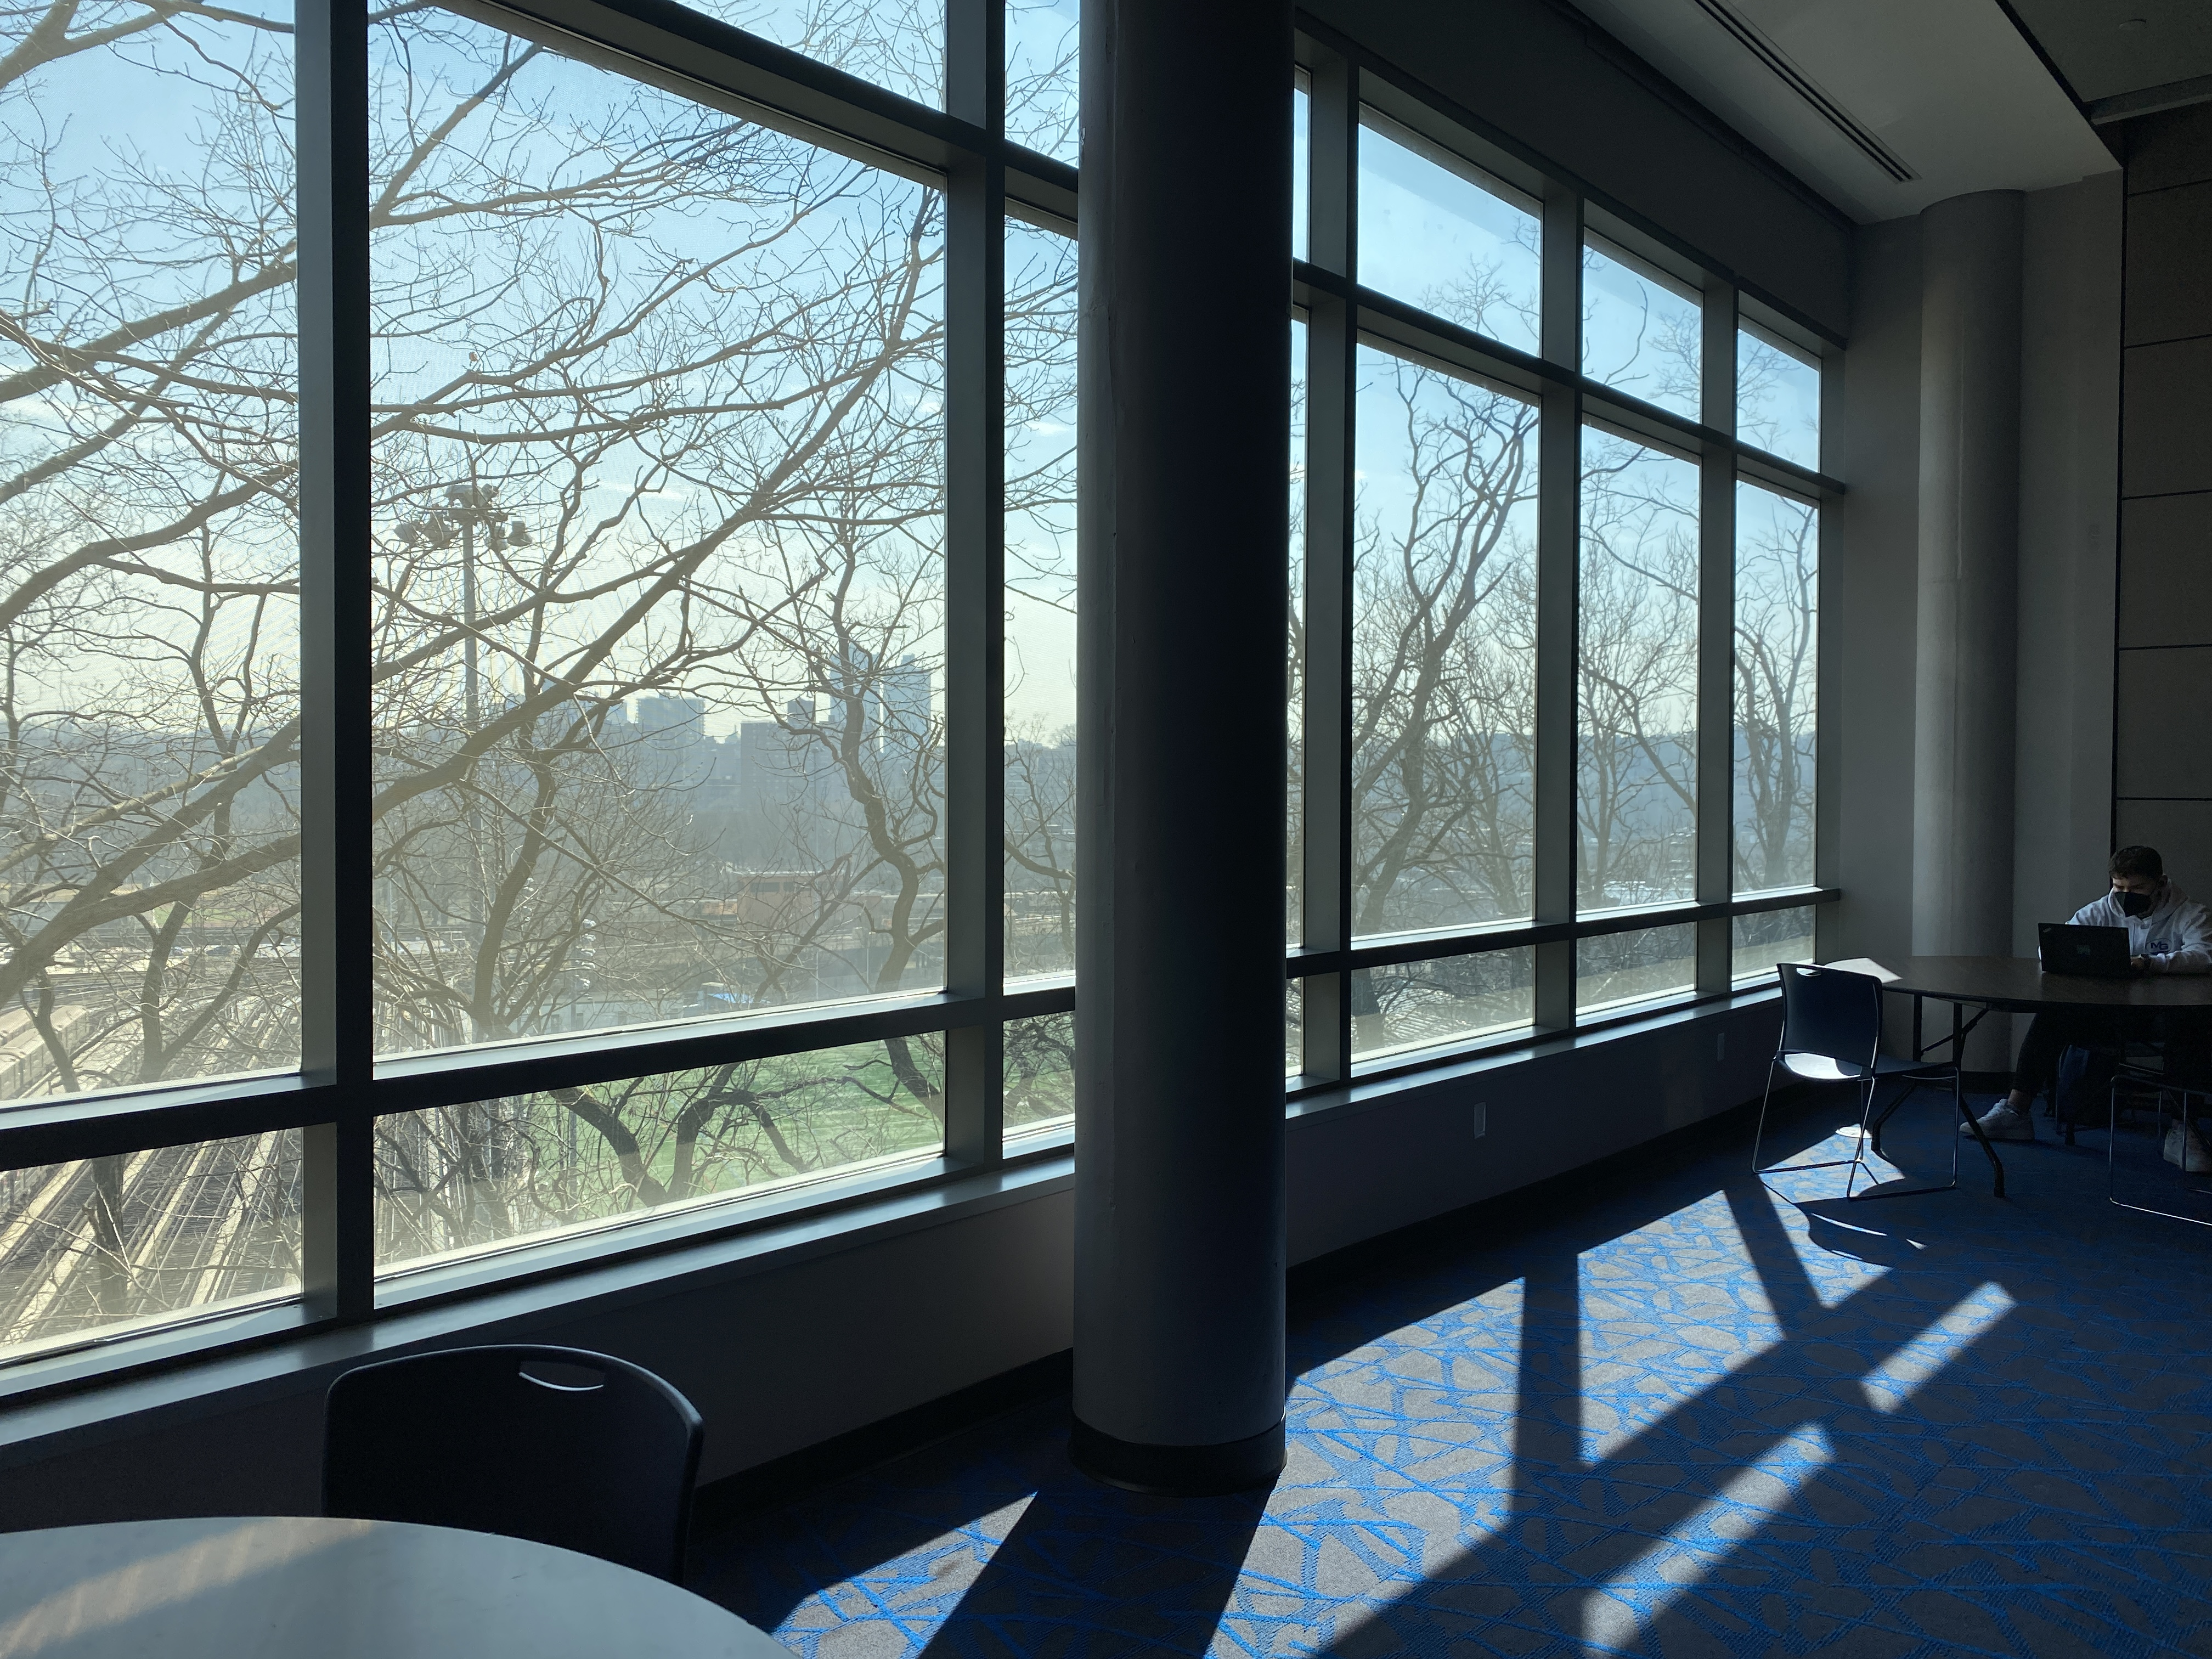 Room with big clear windows and tables for studying